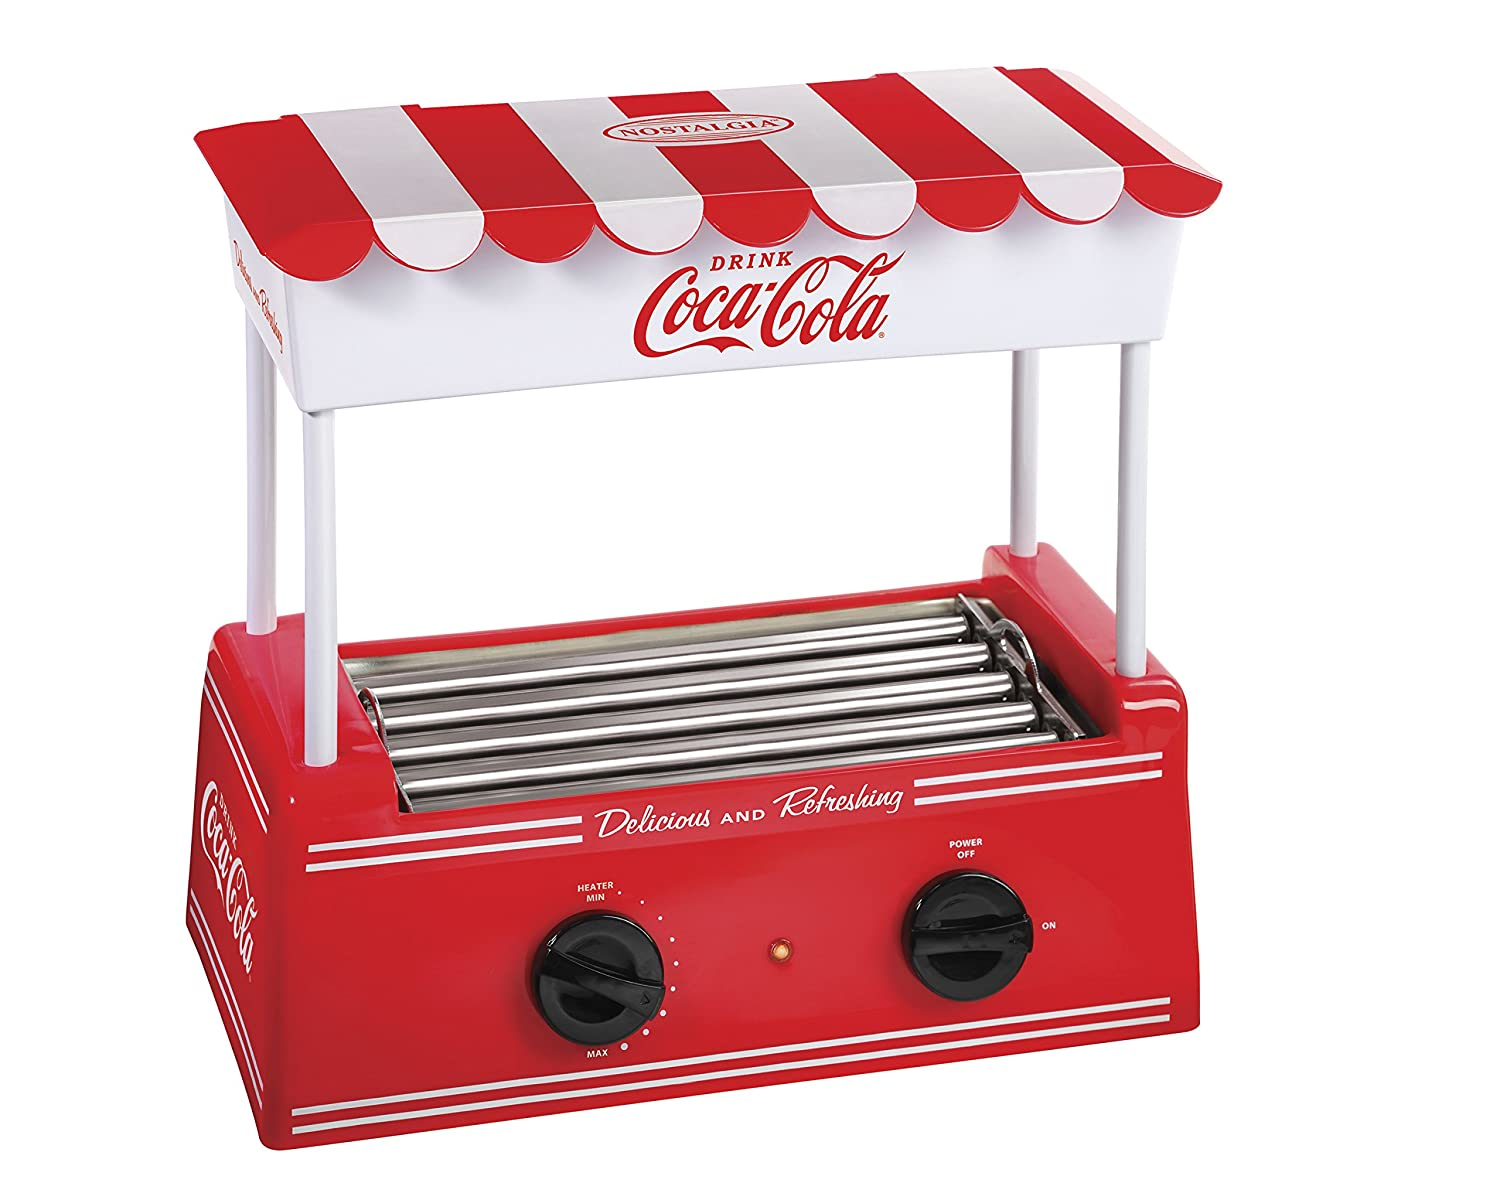 Nostalgia Coca-Cola Hot Dog Roller and Bun Warmer